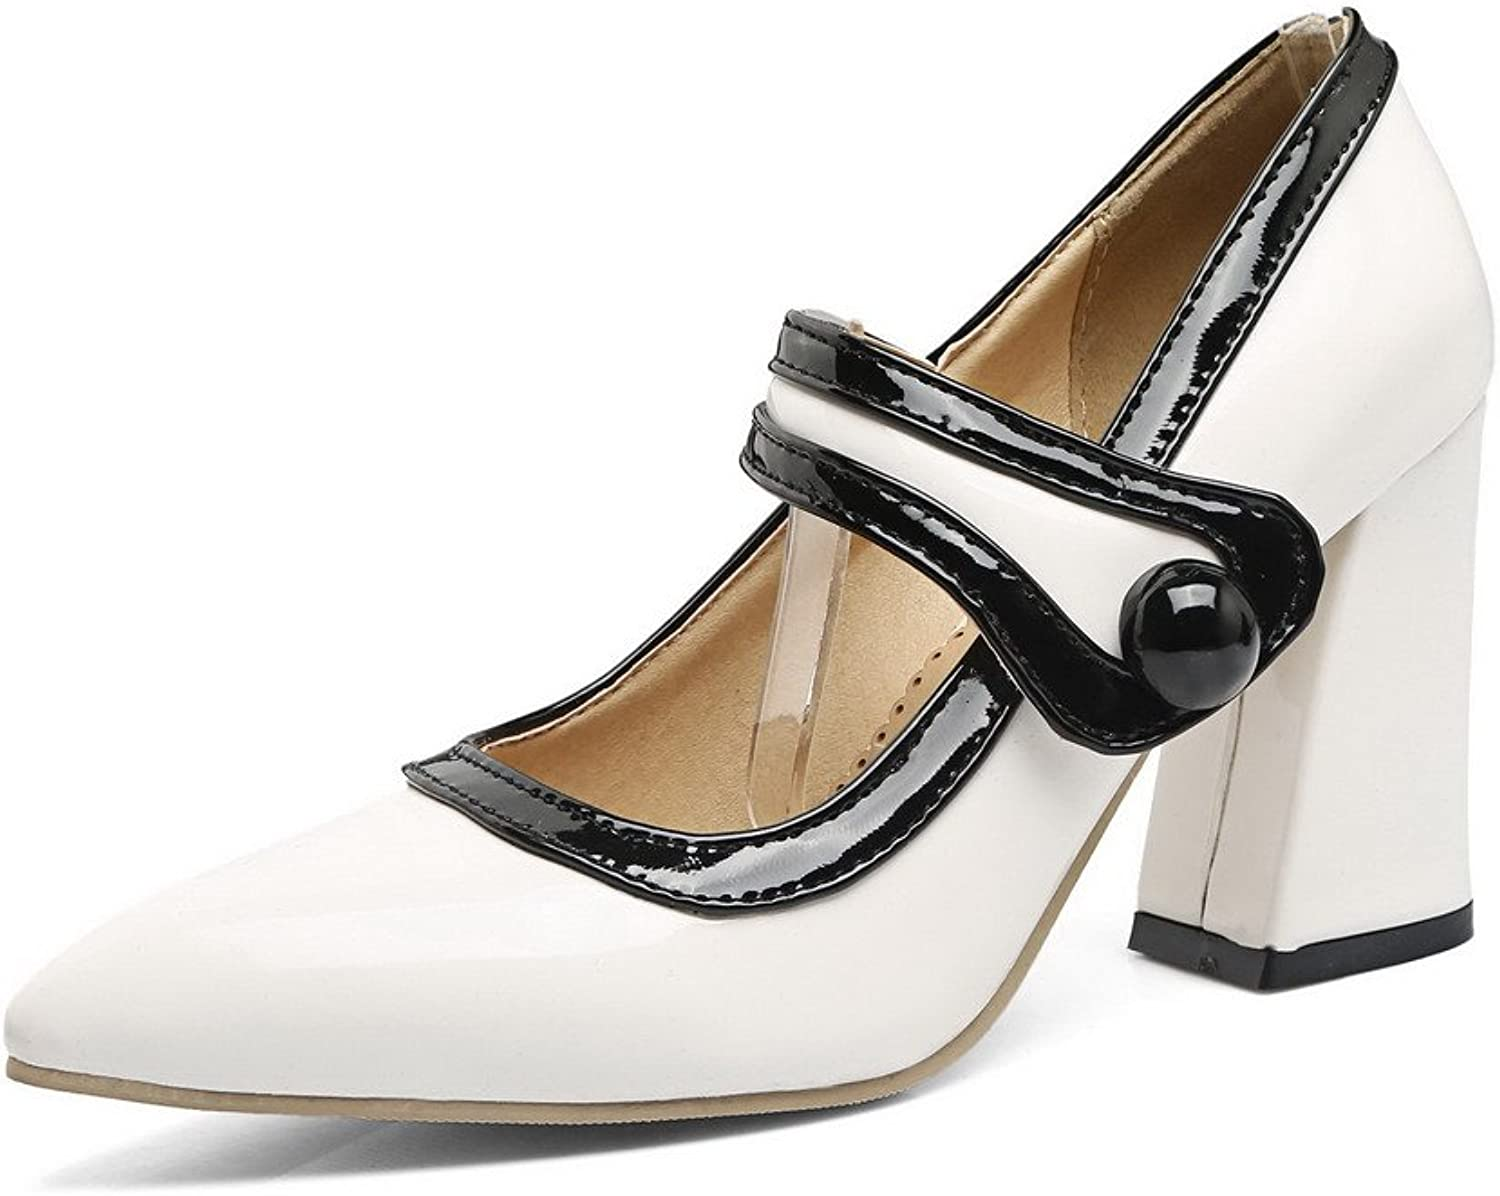 WeenFashion Women's Buckle Patent Leather High-Heels Soild Court shoes